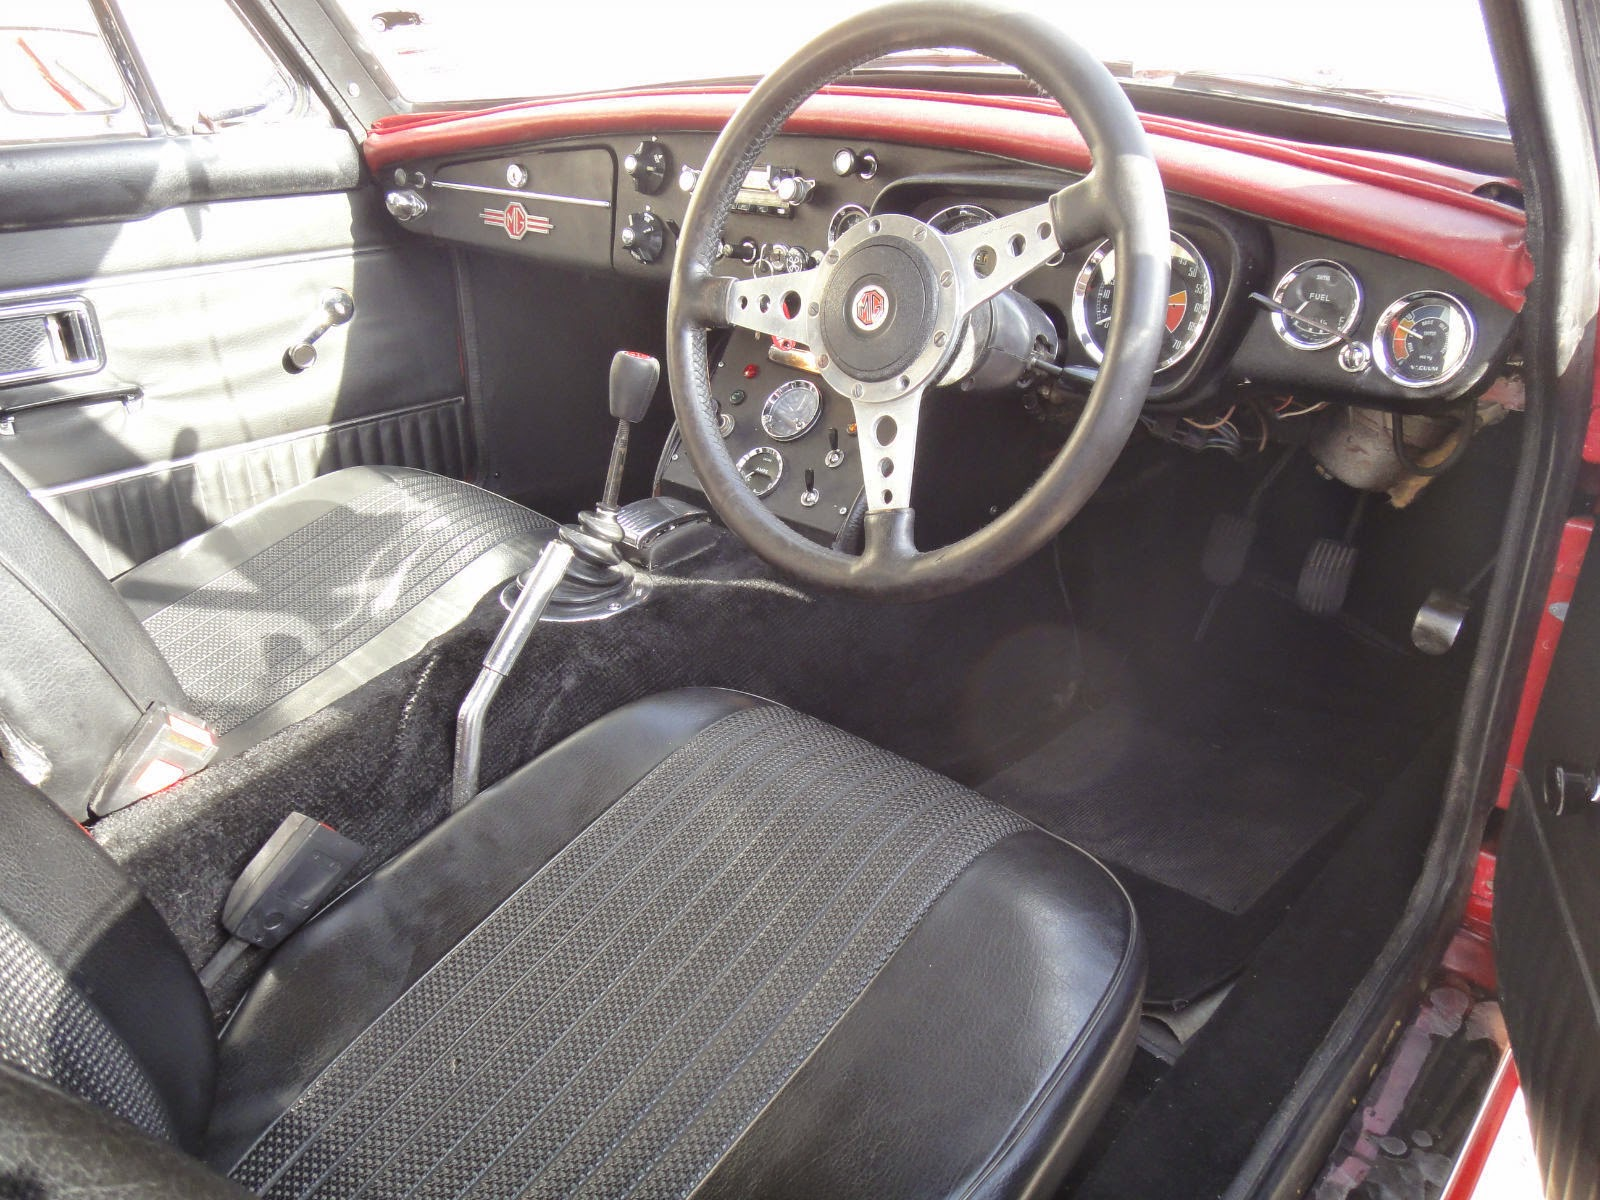 1970 mg mgb gt comes with chrome wire wheels